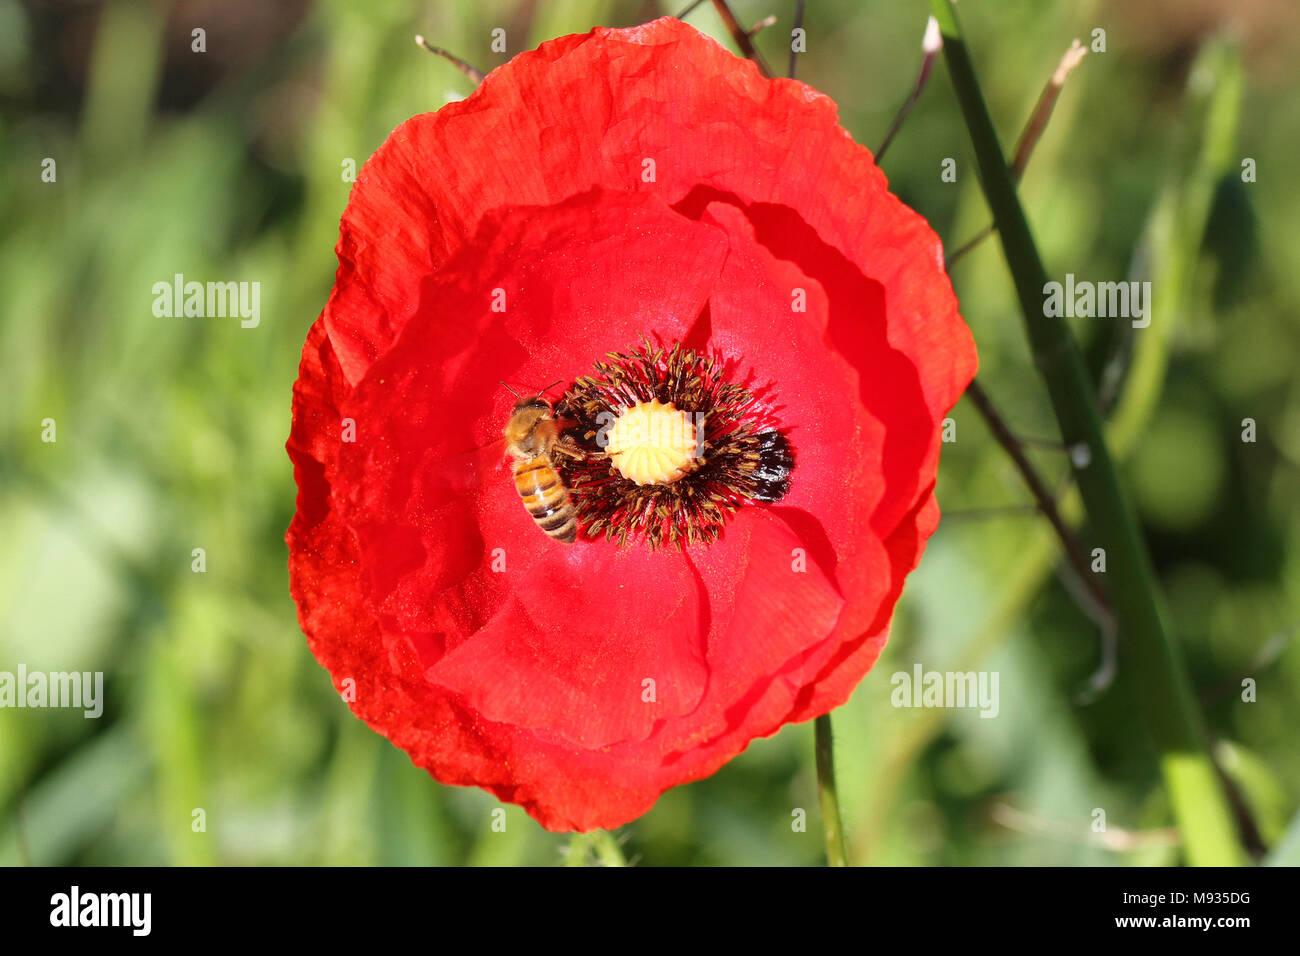 honey bee or worker apis mellifera collecting pollen on a remembrance poppy flower first world war remembering Flanders fields poem by John McCrae - Stock Image